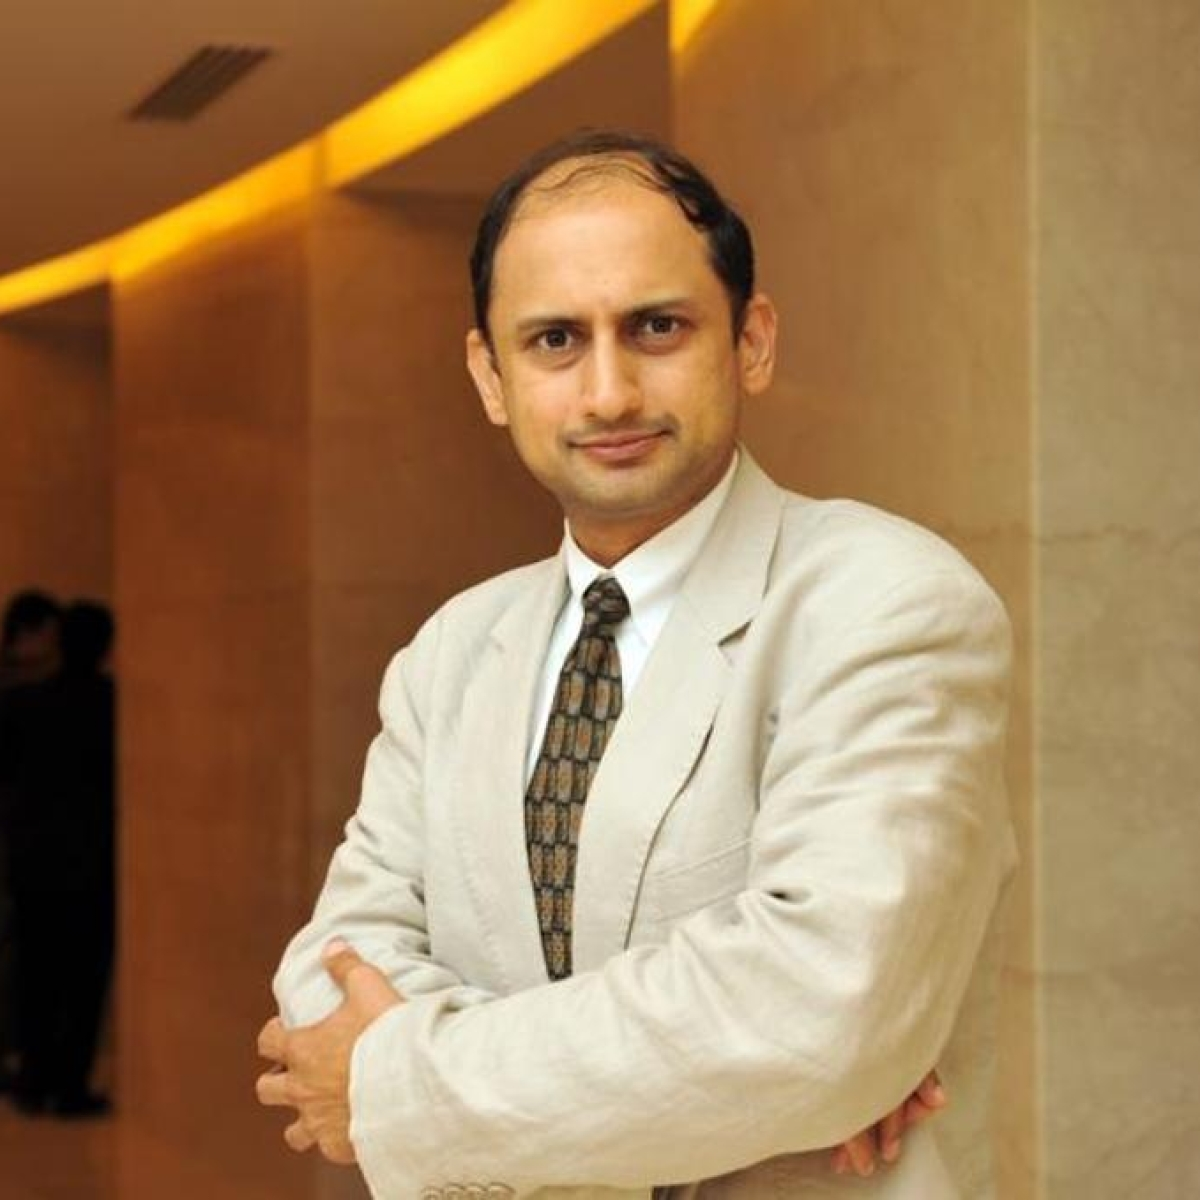 Quest for Restoring Financial Stability in India review: Former RBI deputy governor Viral Acharya explains India's economy without jargon